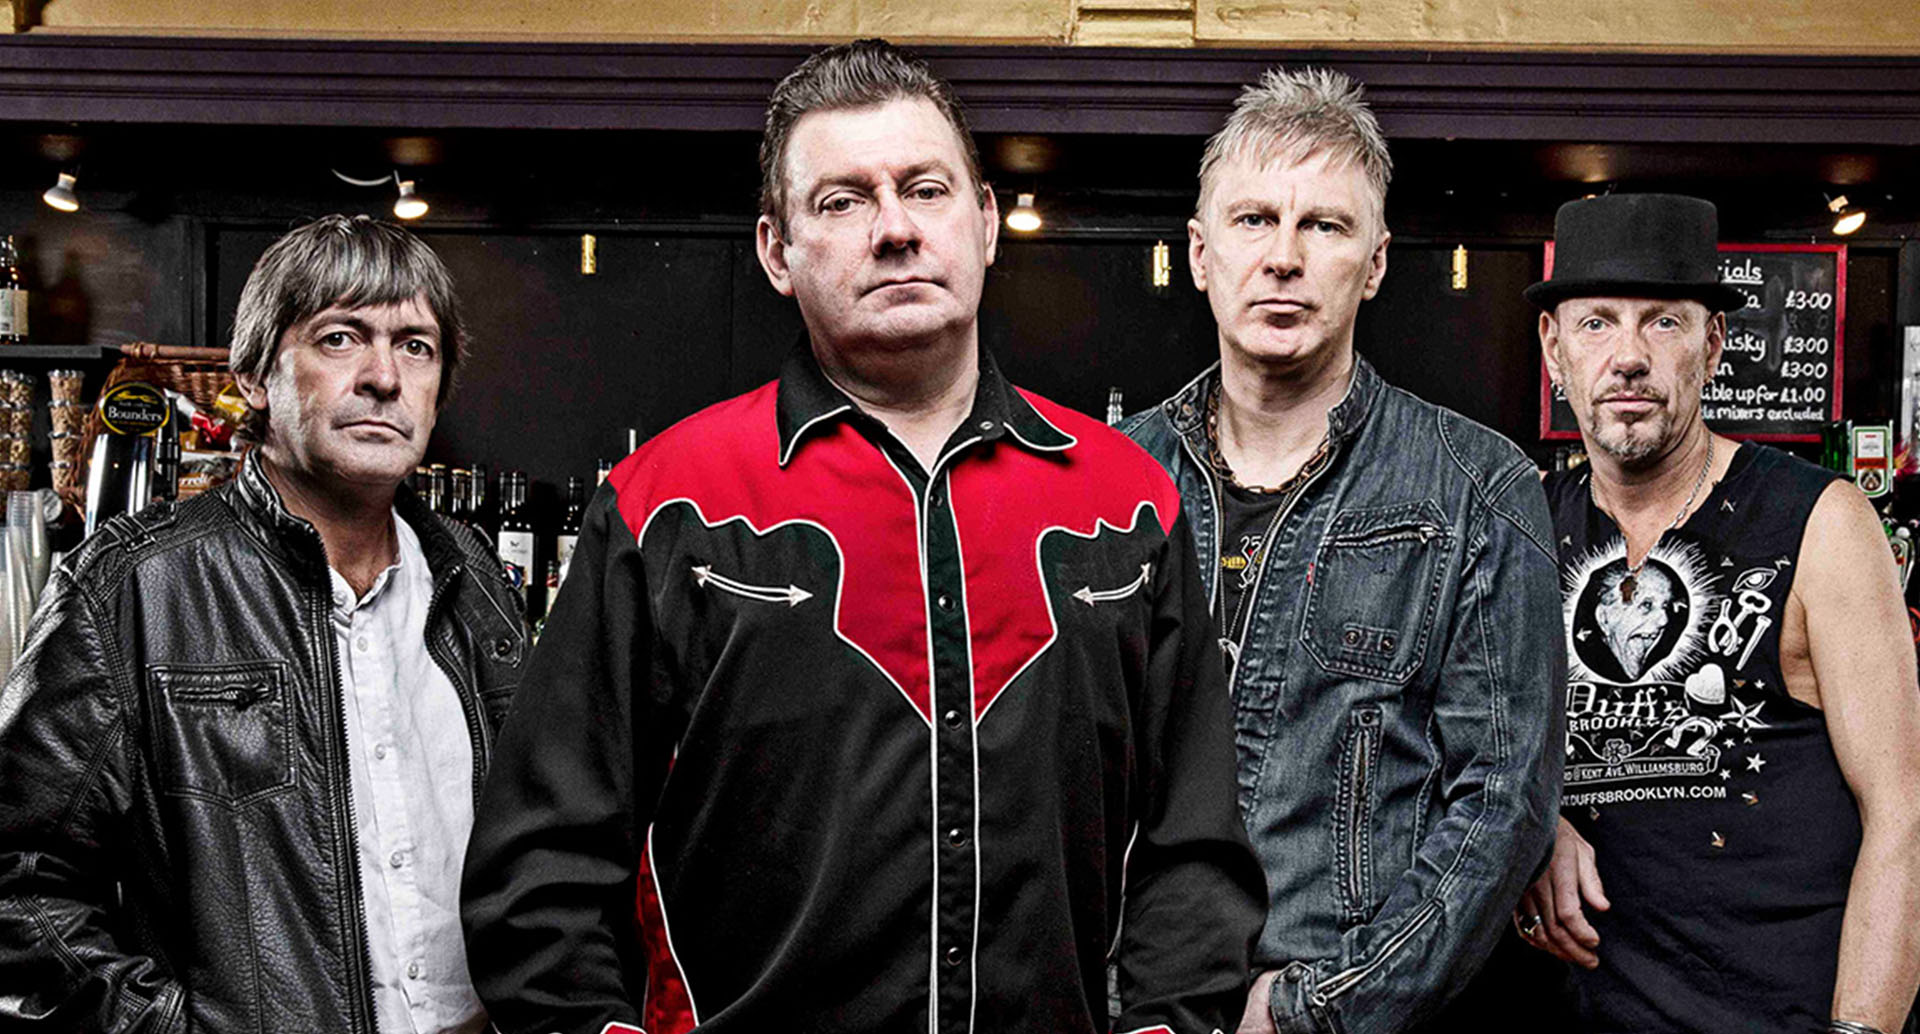 Stiff Little Fingers will perform in Singapore on February 2020